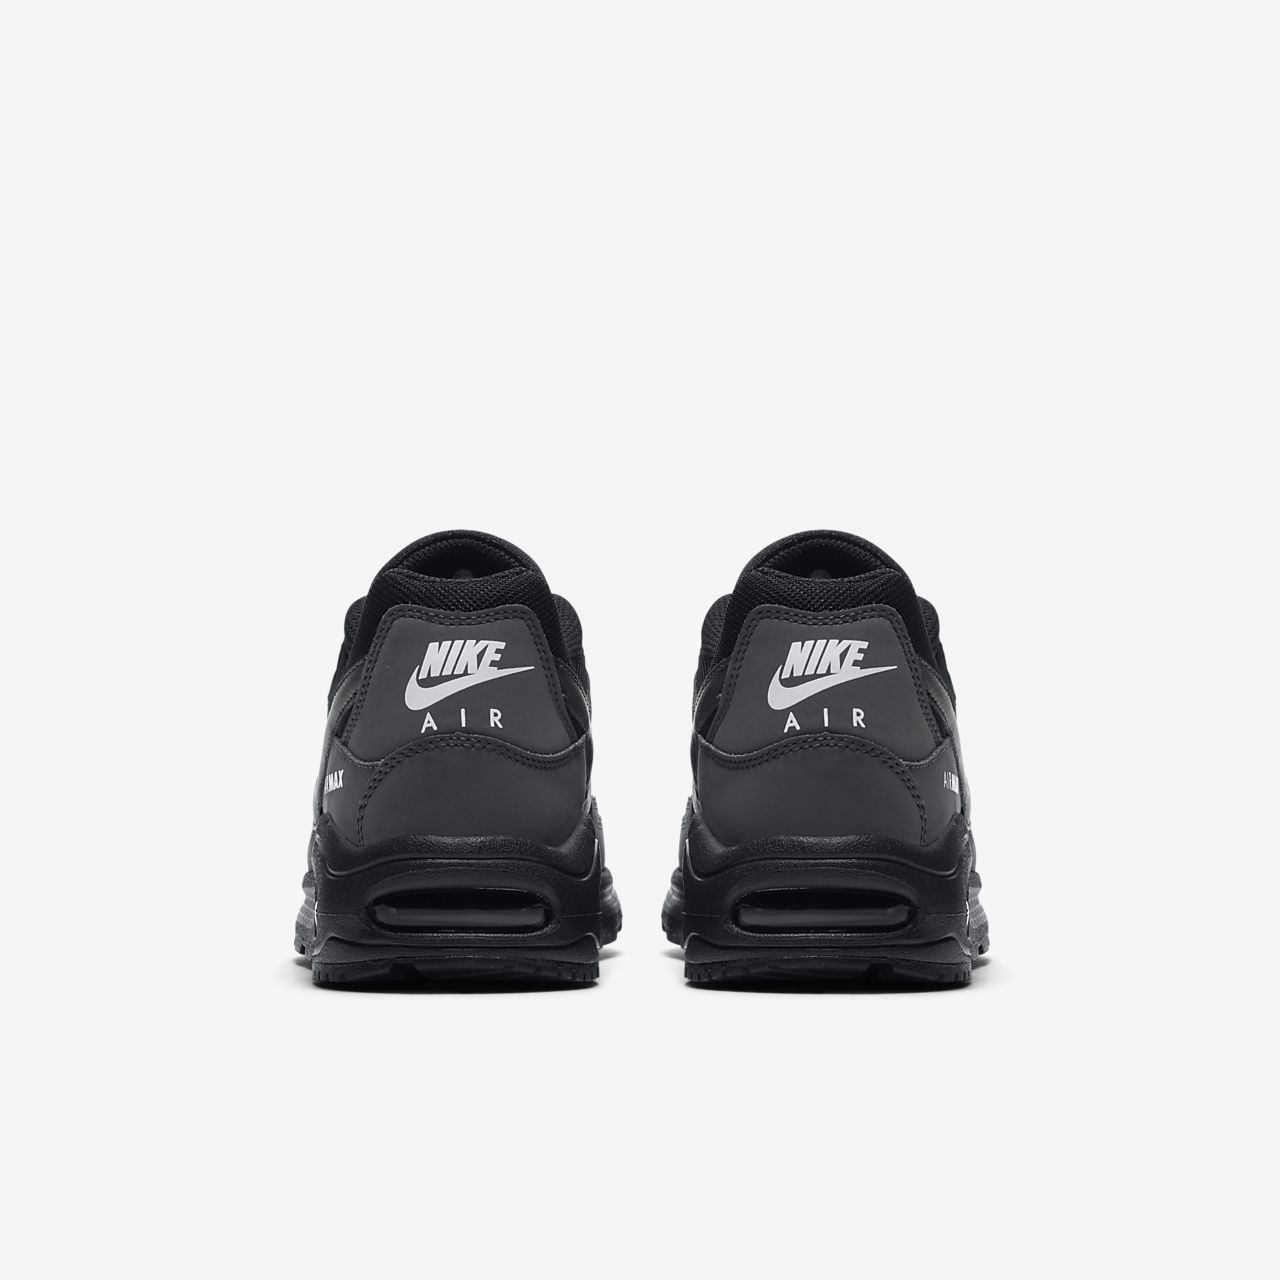 Details about Nike Air Max Command Flex GS Shoes Trainers Sneakers Boys Girls Ladies show original title